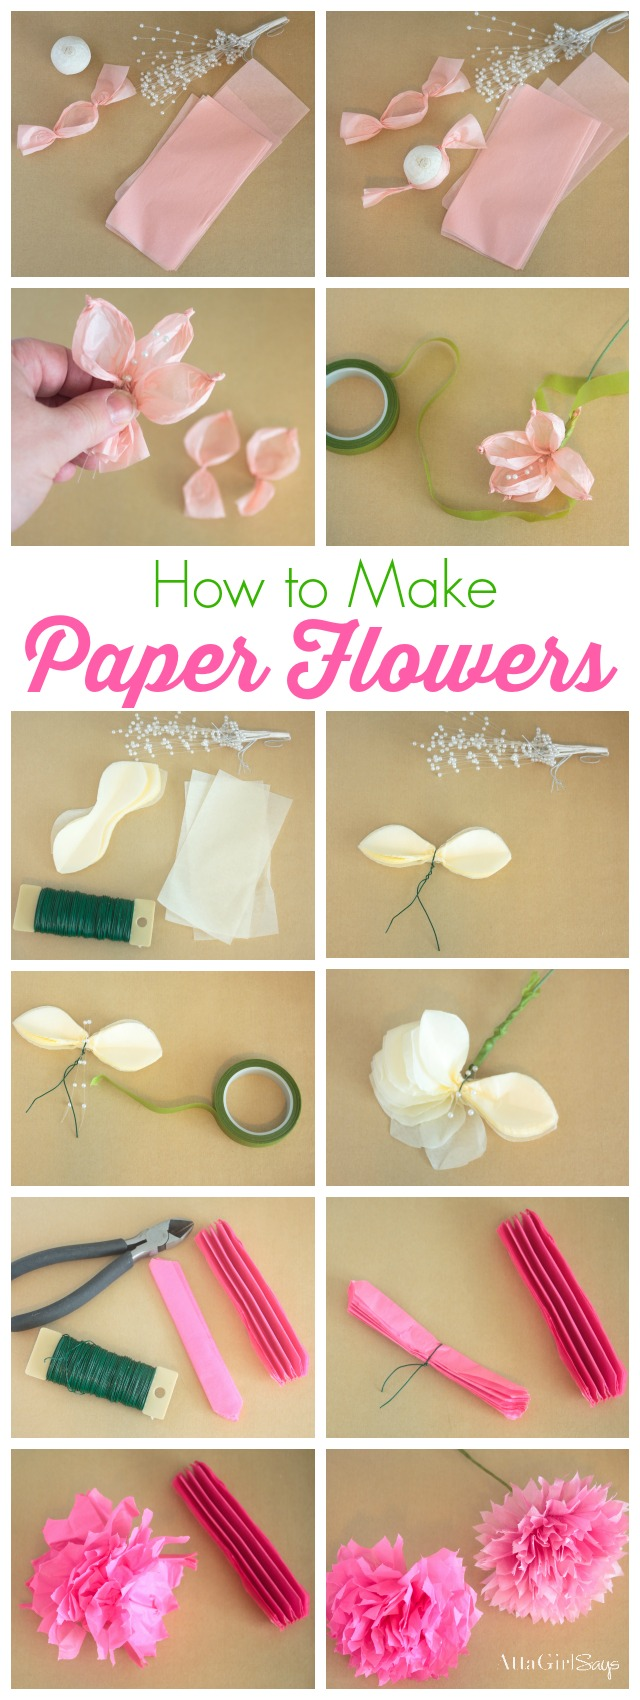 Tissue Paper Flower Crafts For Kids Vatozozdevelopment